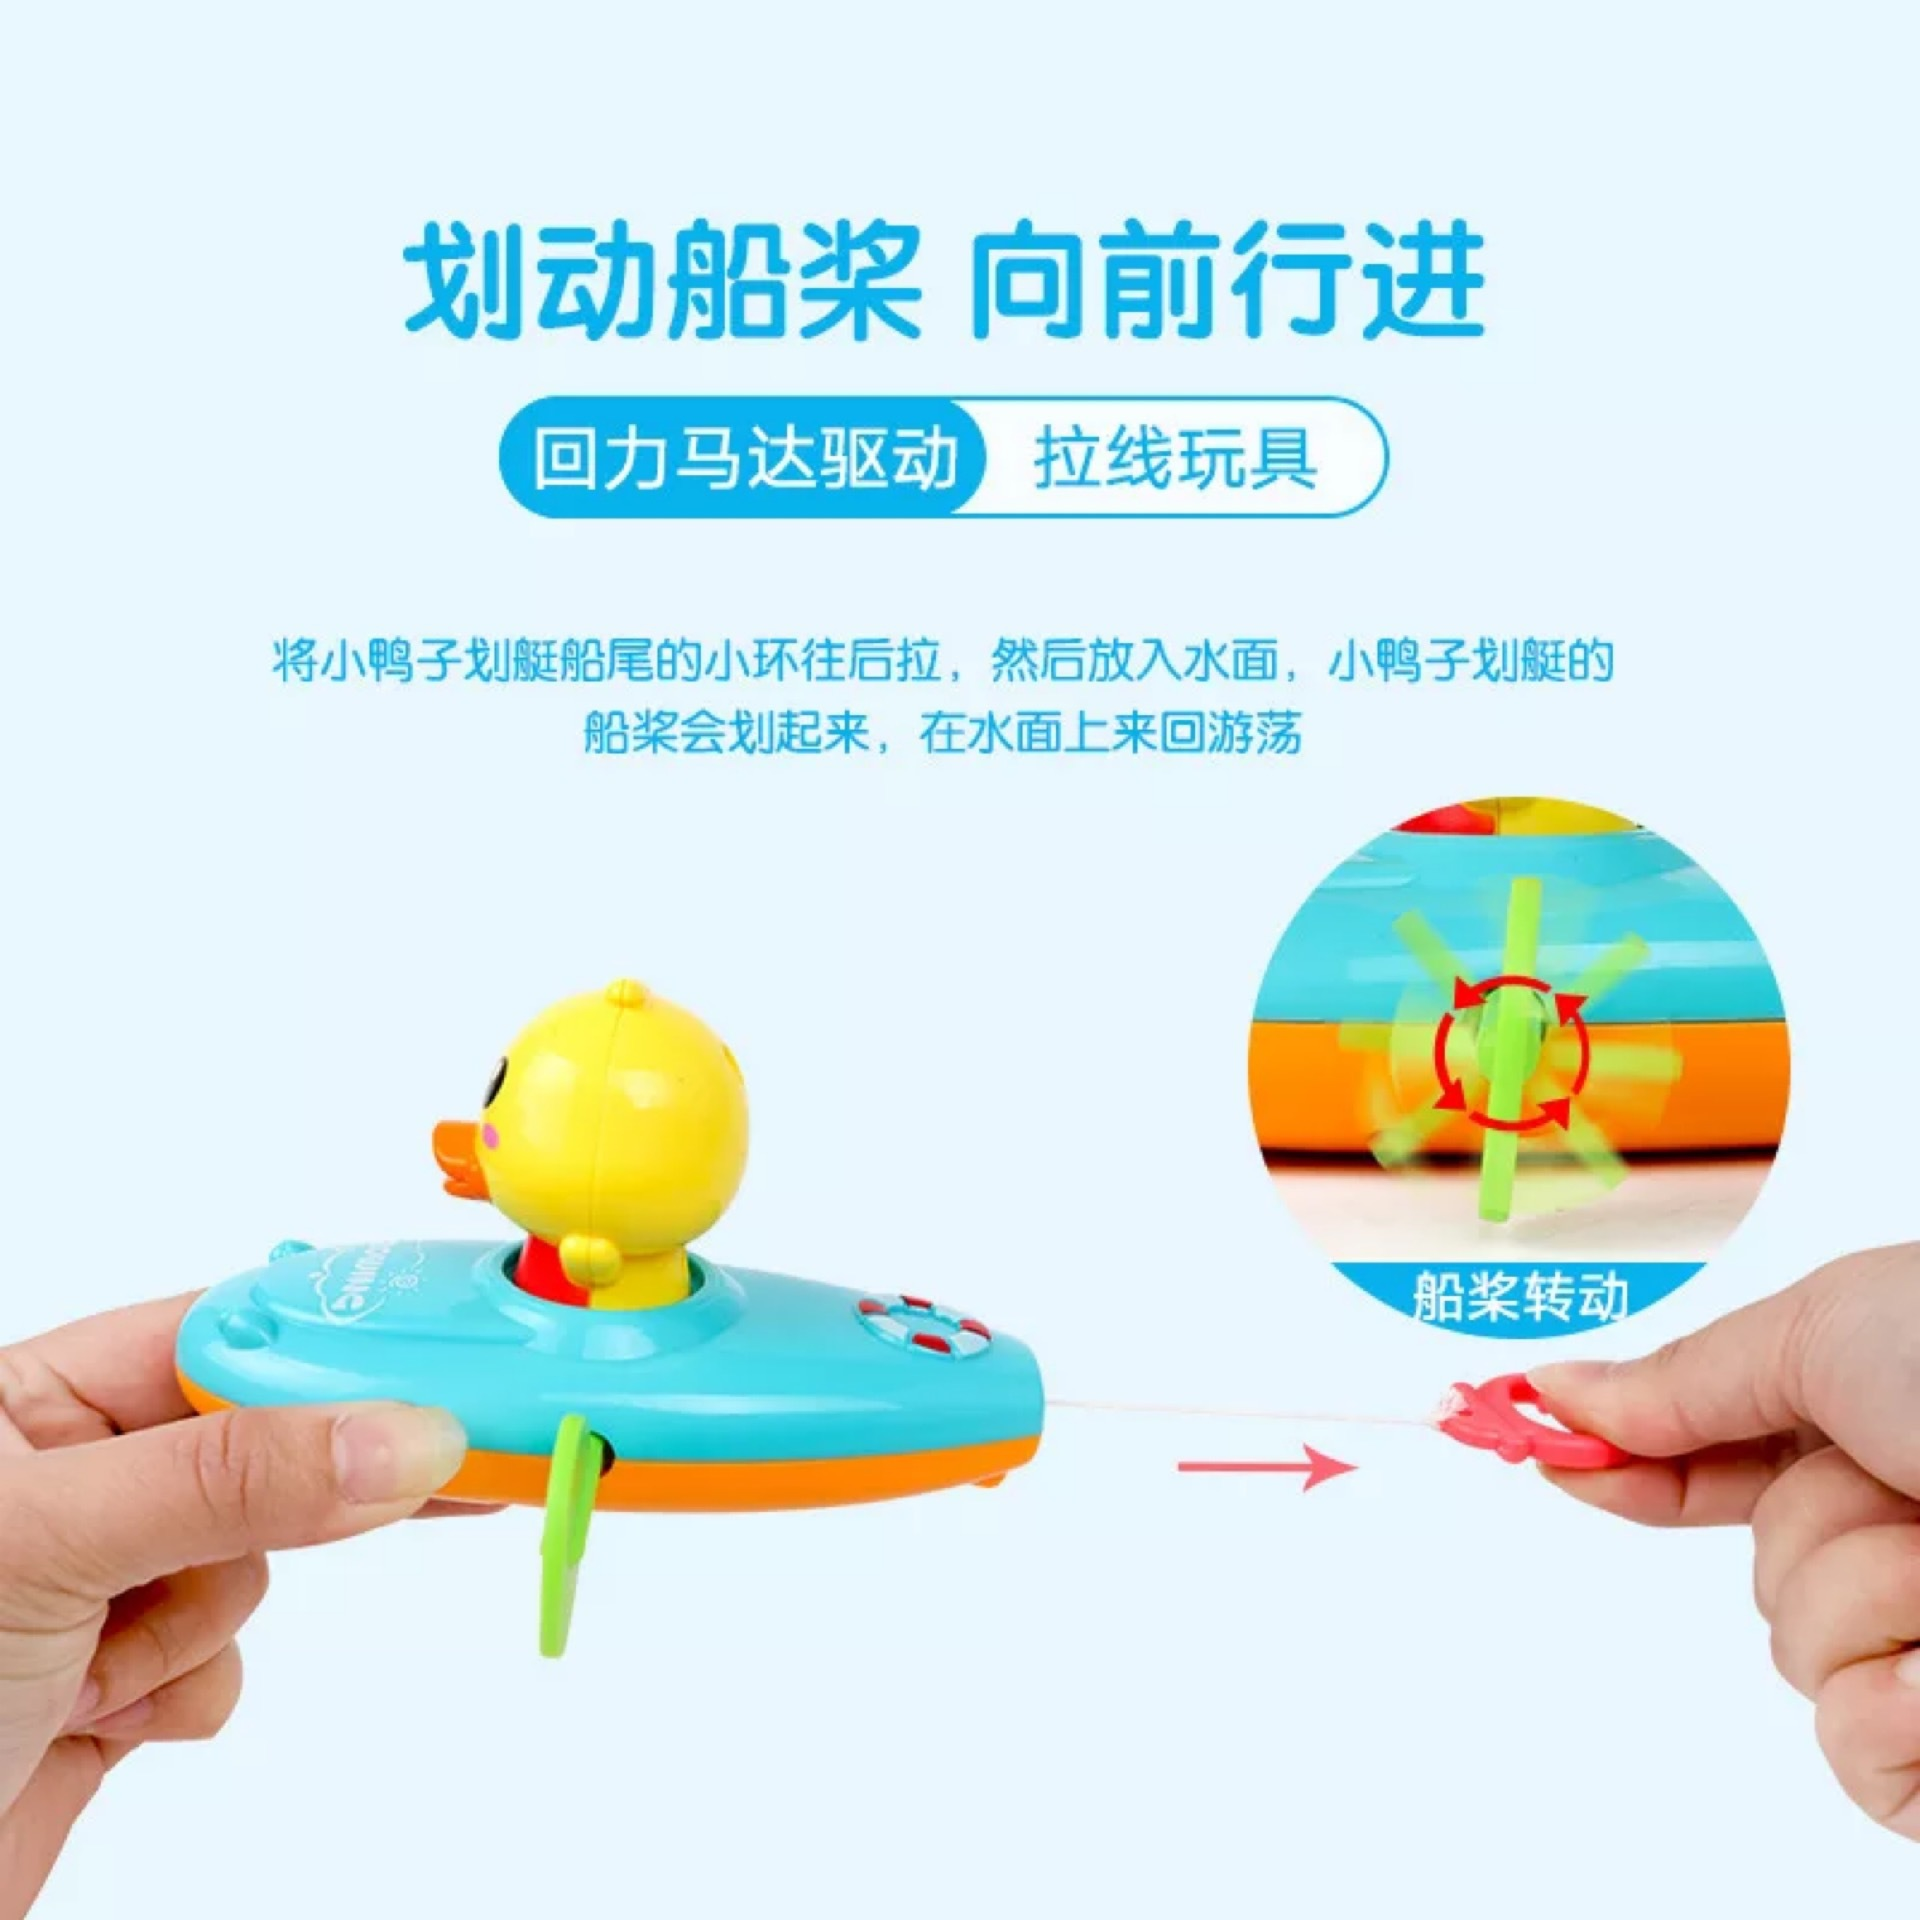 Summer New Style Water Toys Warrior Rowing Small Yellow Duck Boating Bath Play With Water Children Bathroom Winding Toy